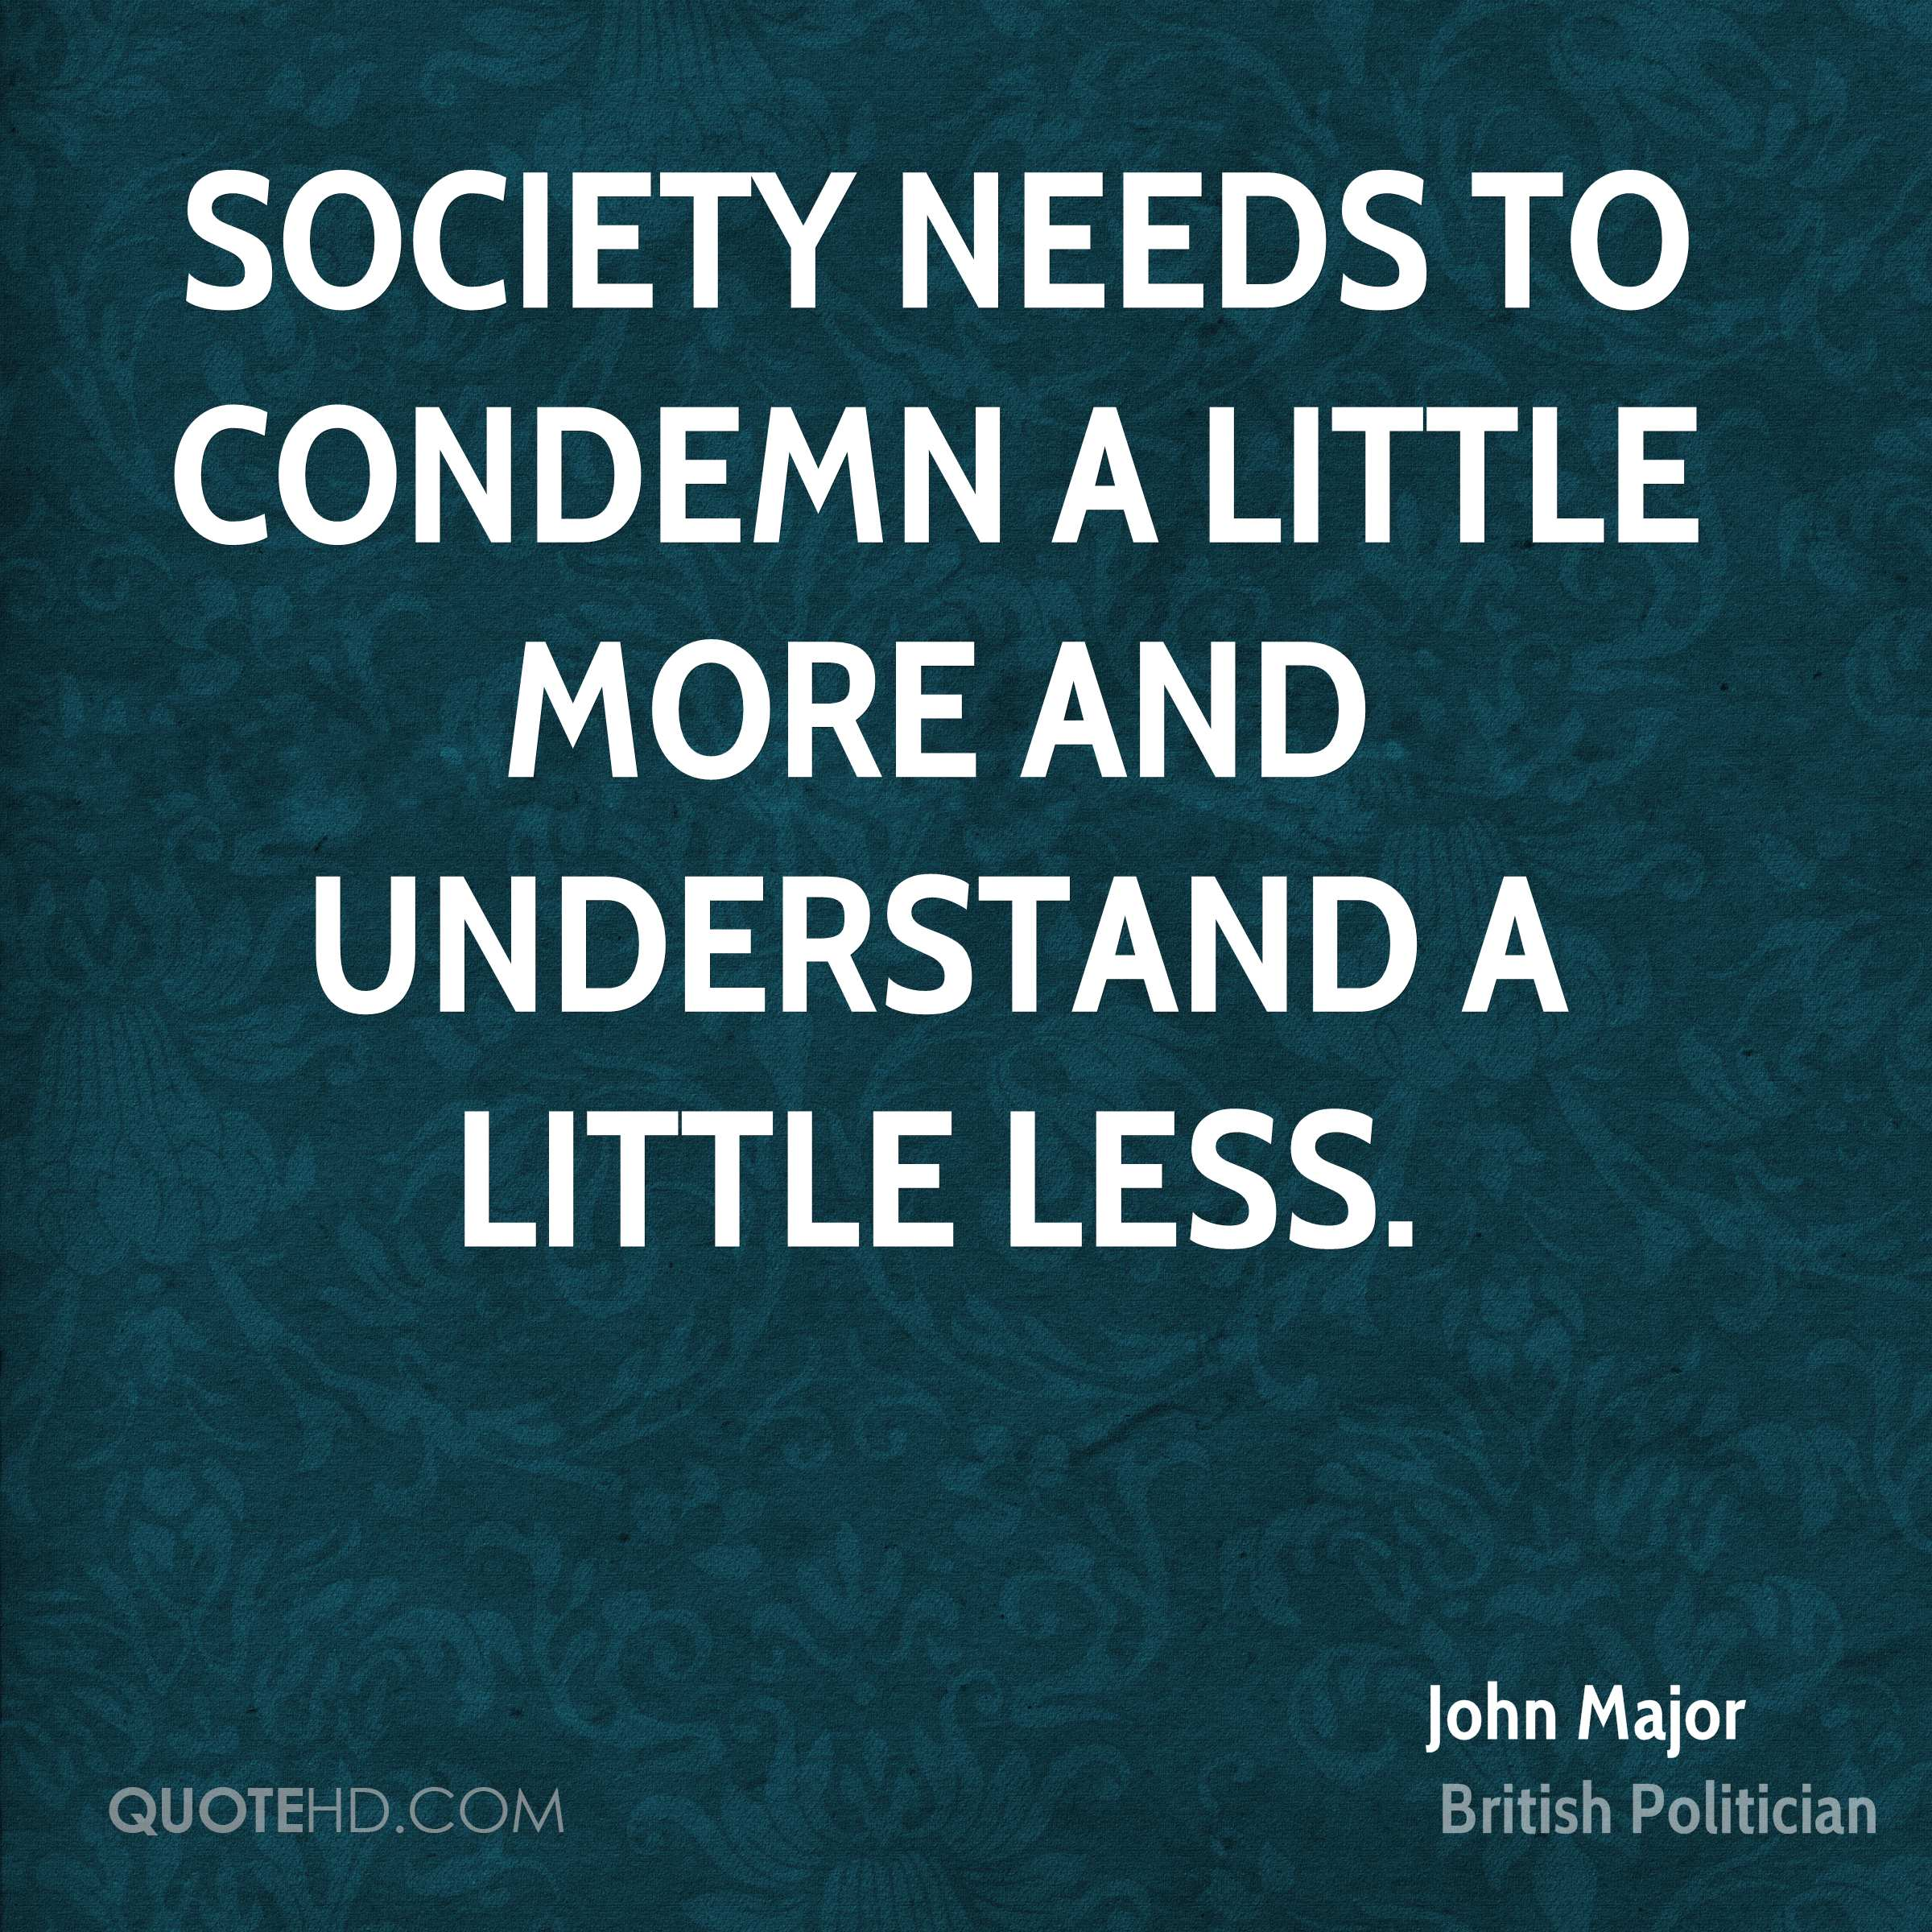 Society needs to condemn a little more and understand a little less.